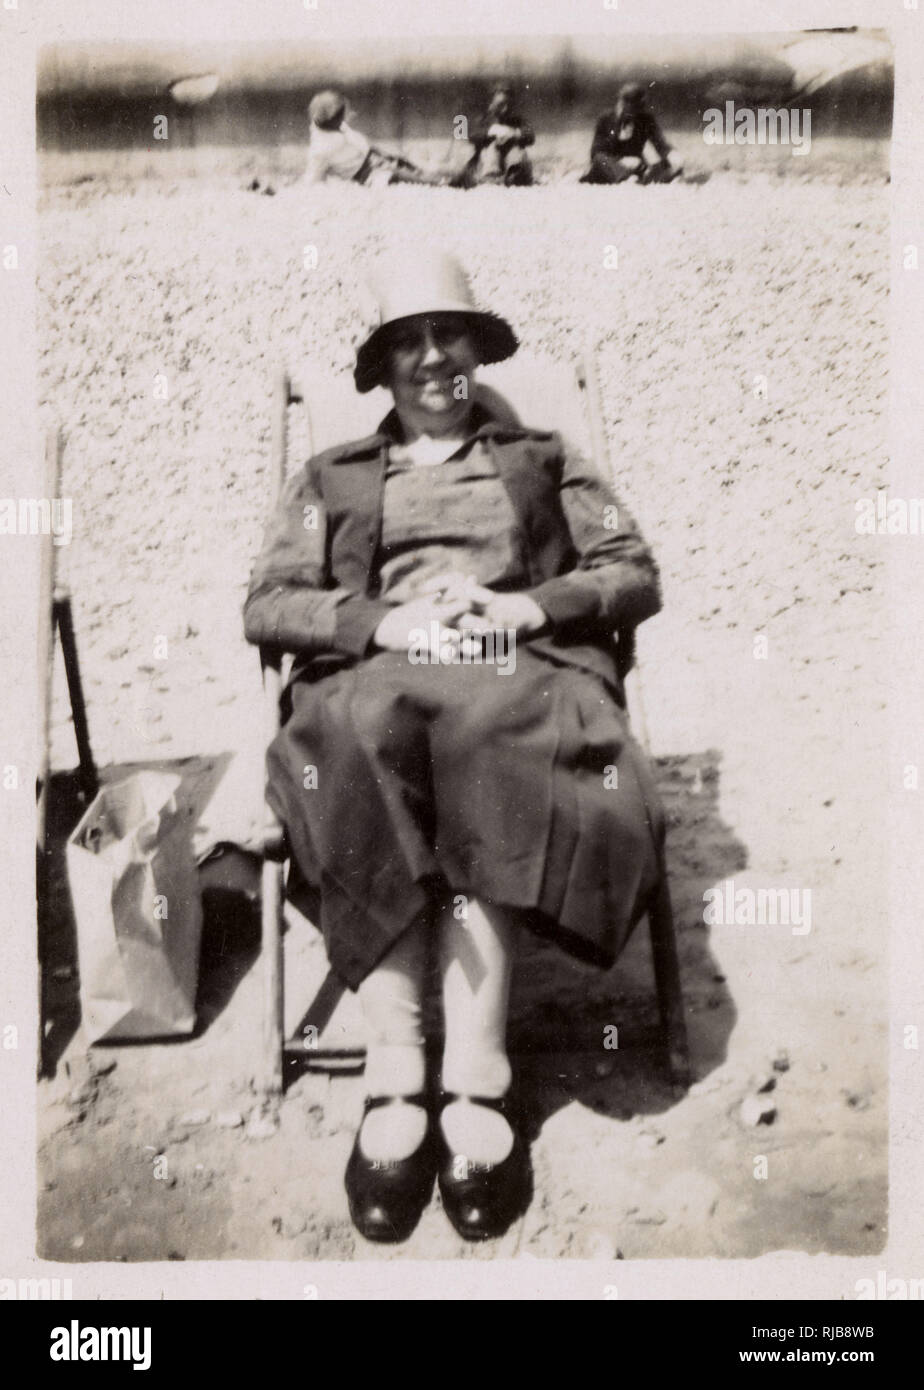 A woman called June looking very comfortable and organised in a deckchair on an unidentified beach. Stock Photo